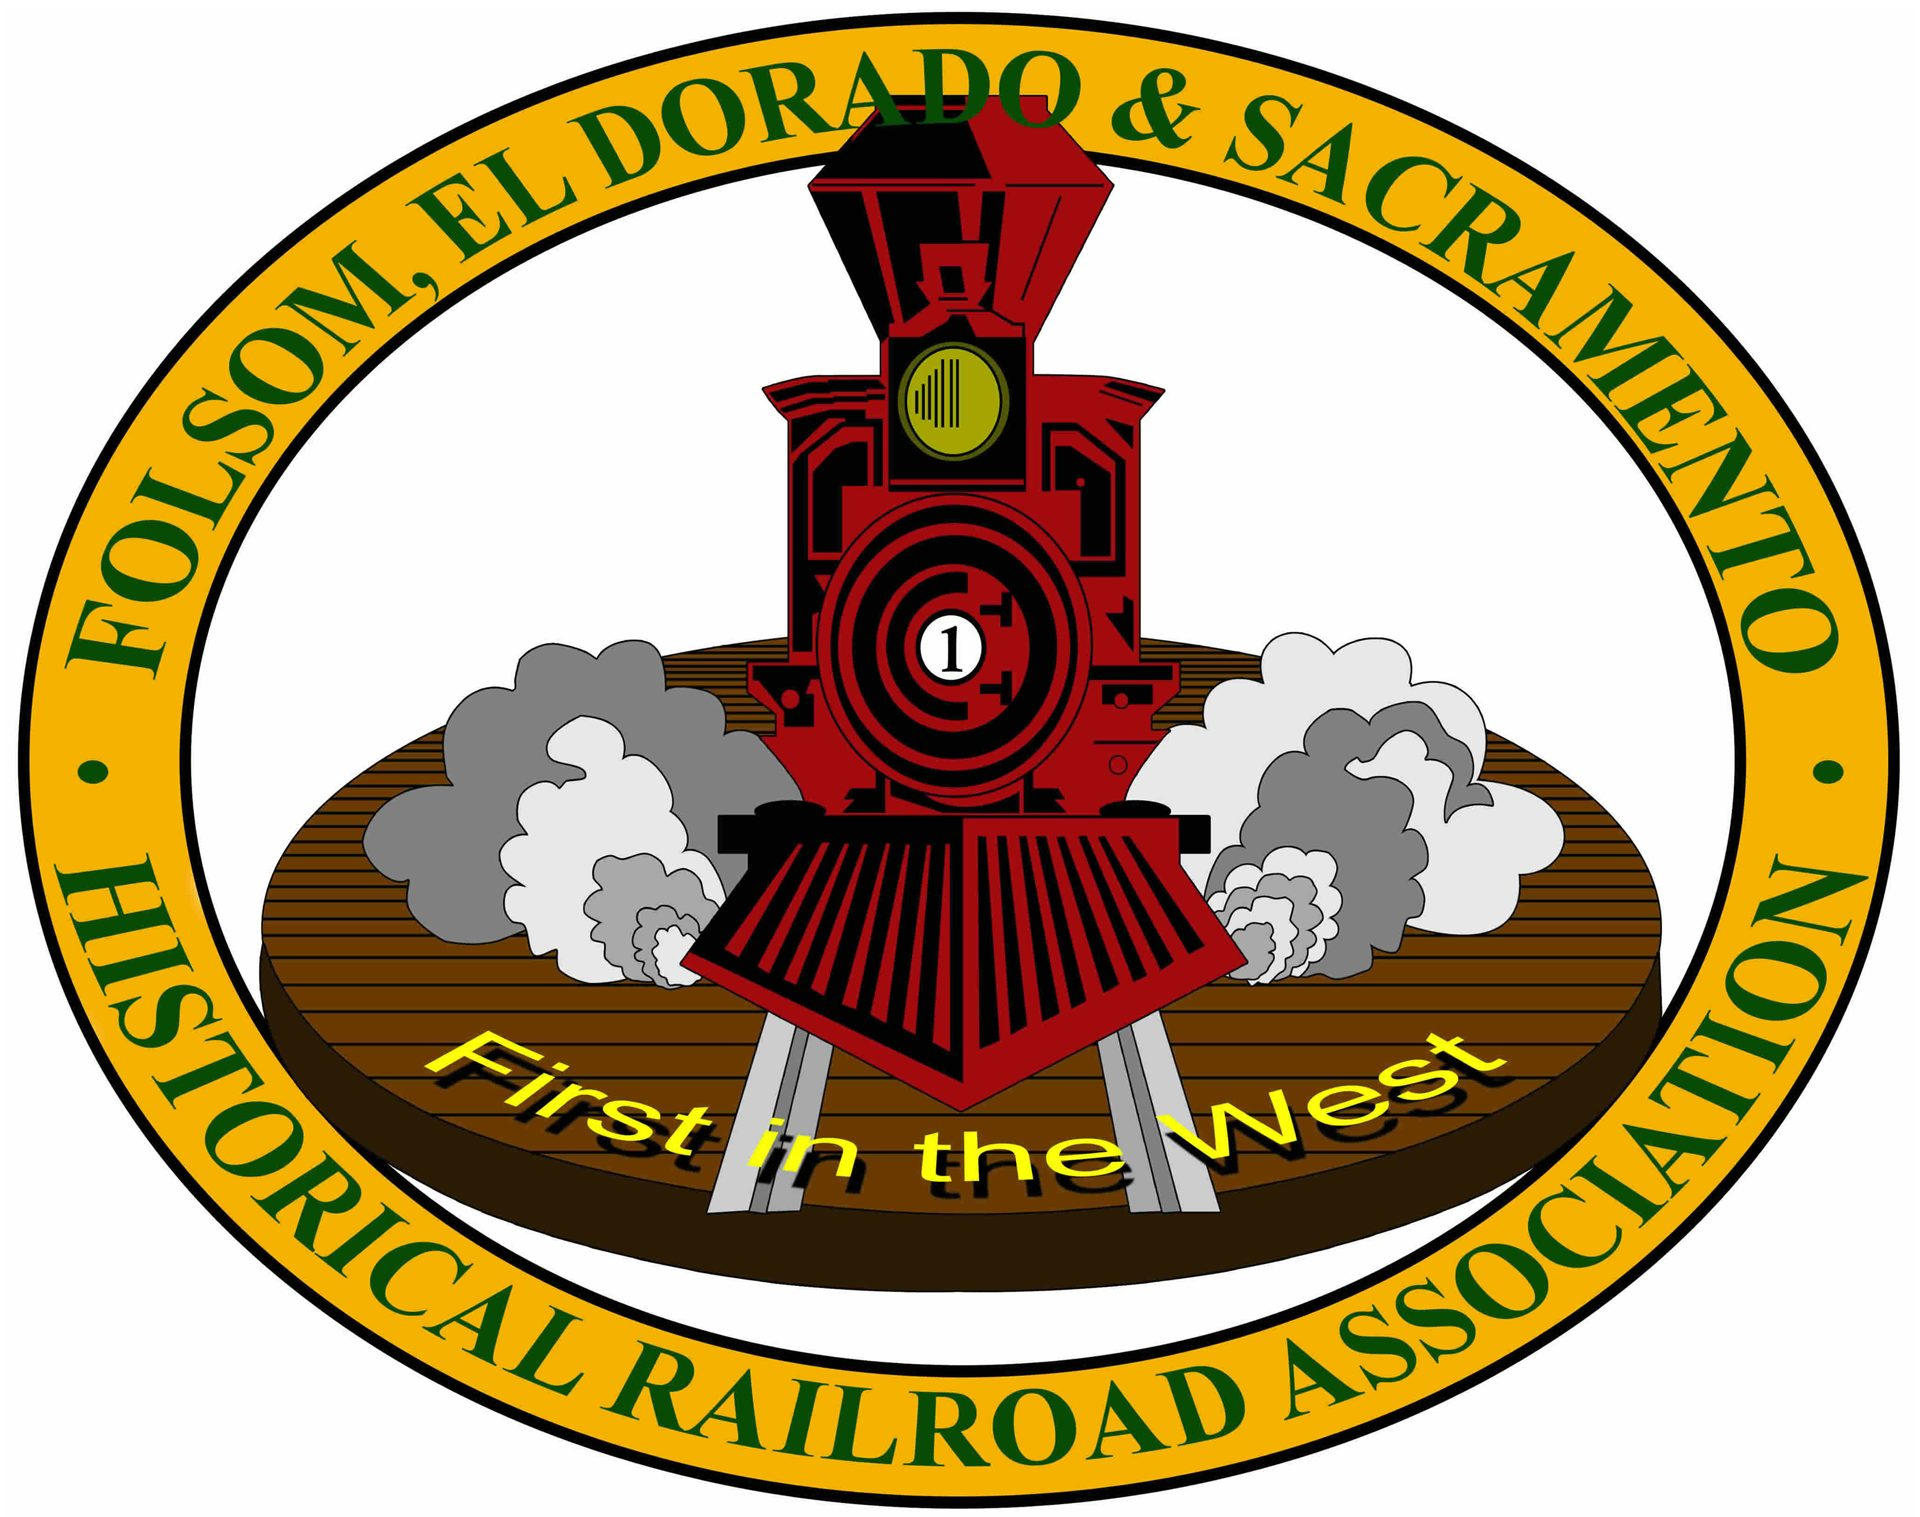 Folsom, El Dorado & Sacramento Historical Railroad Association